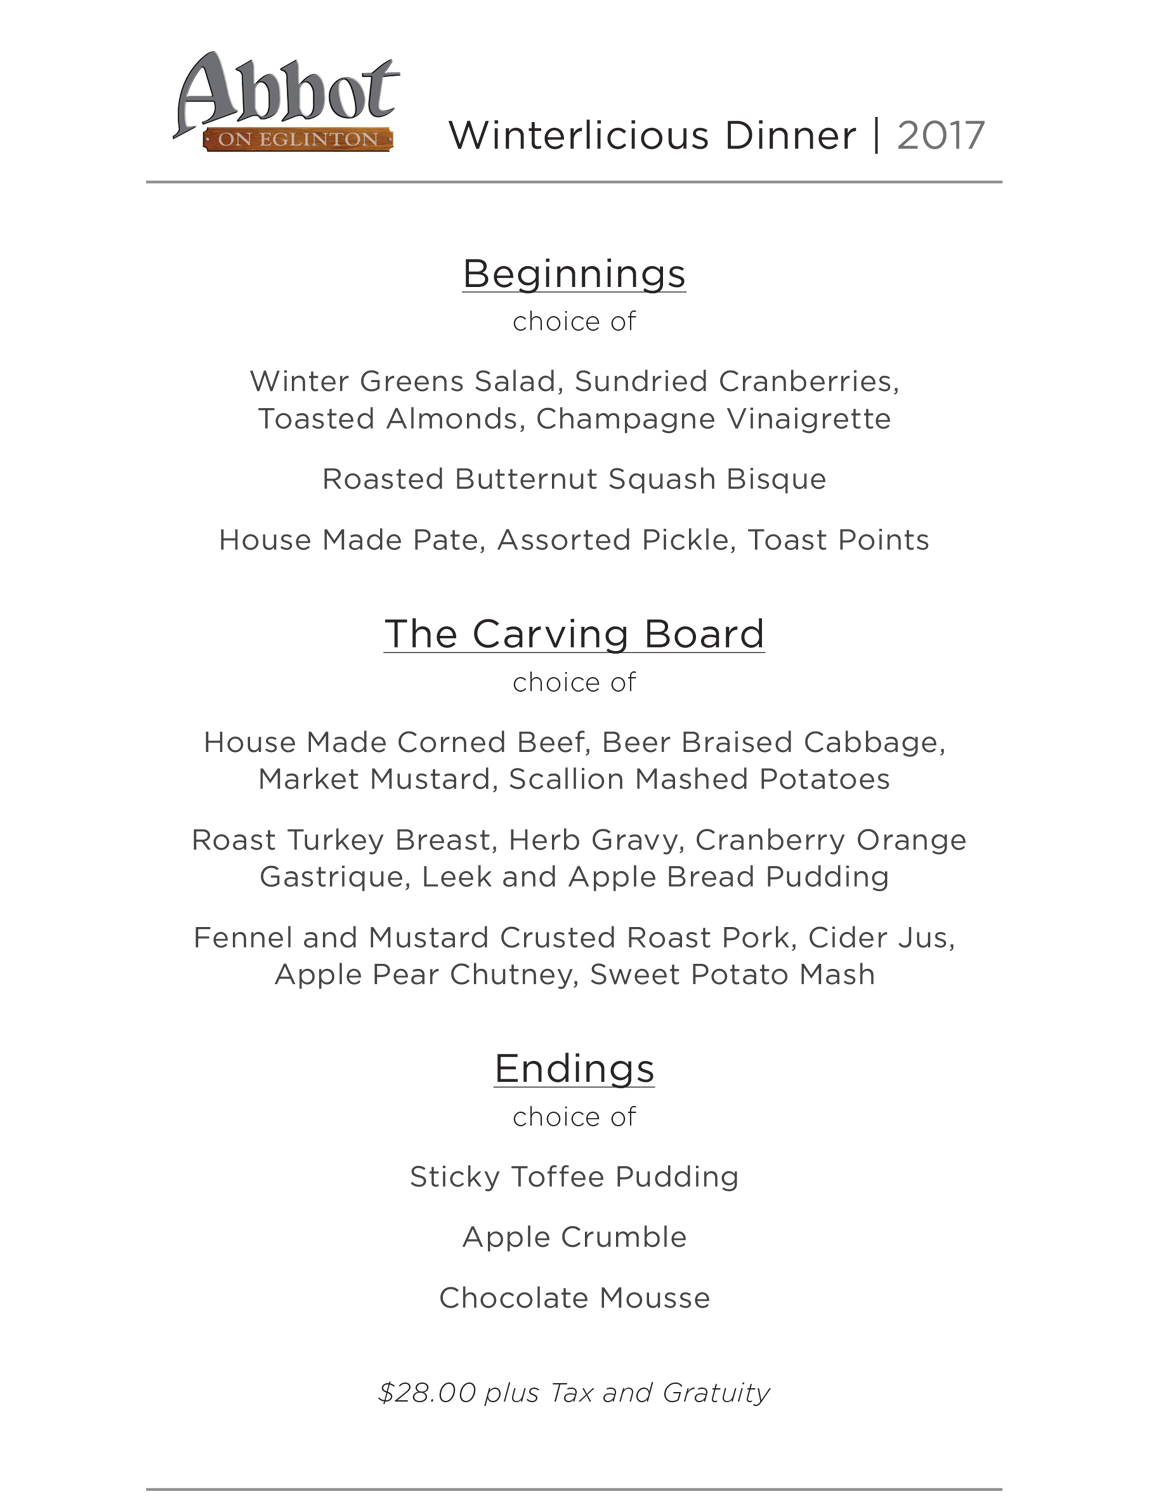 Abbot Winterlicious Dinner Menu